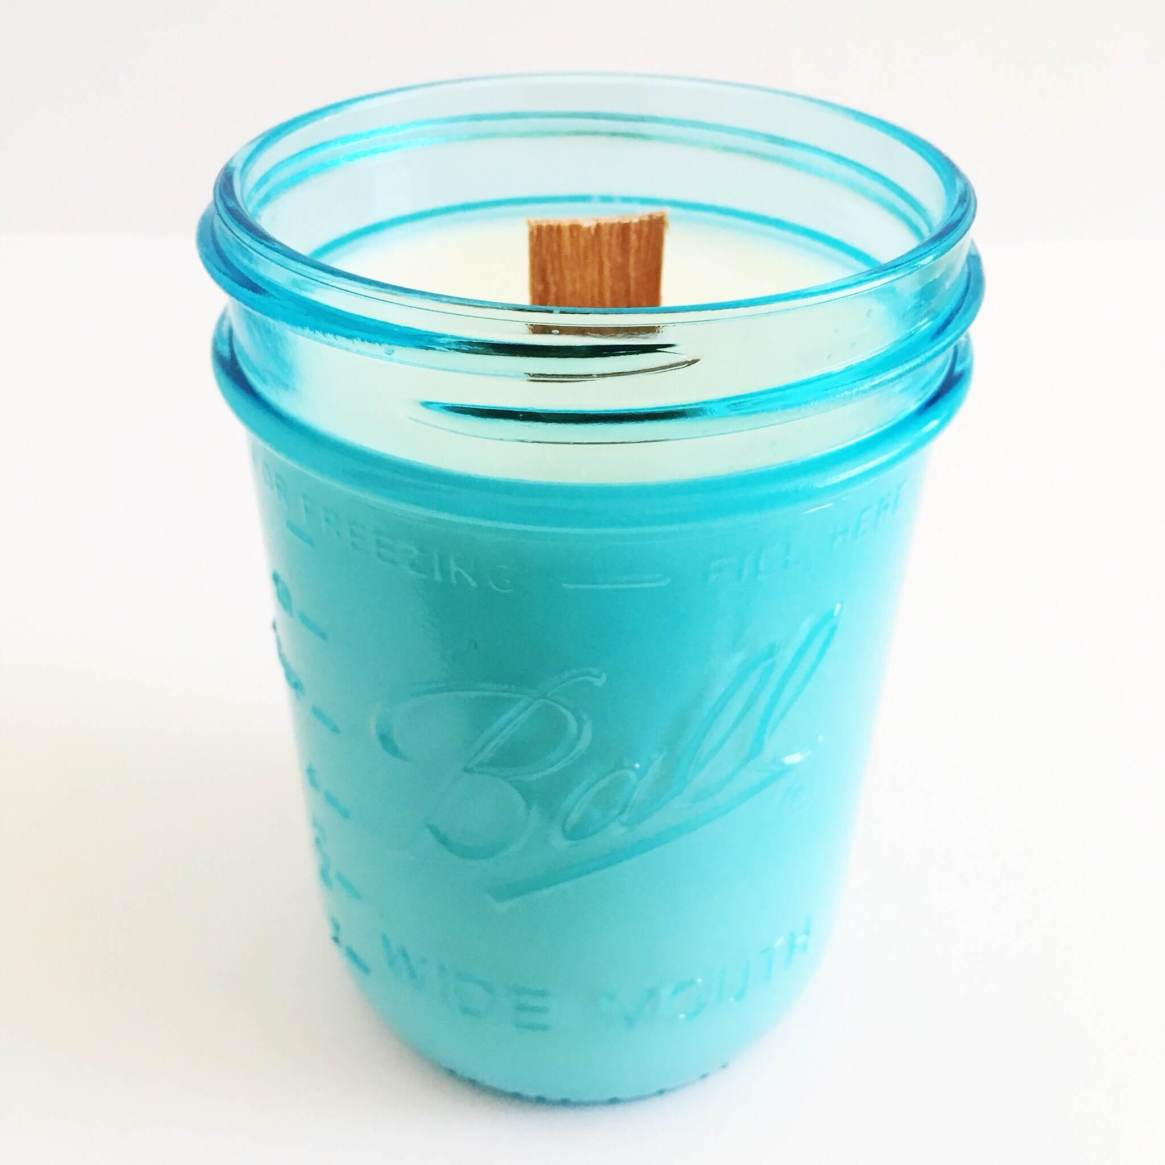 soy-candles-blue-pint-jars-wooden-wicks-16-ounces